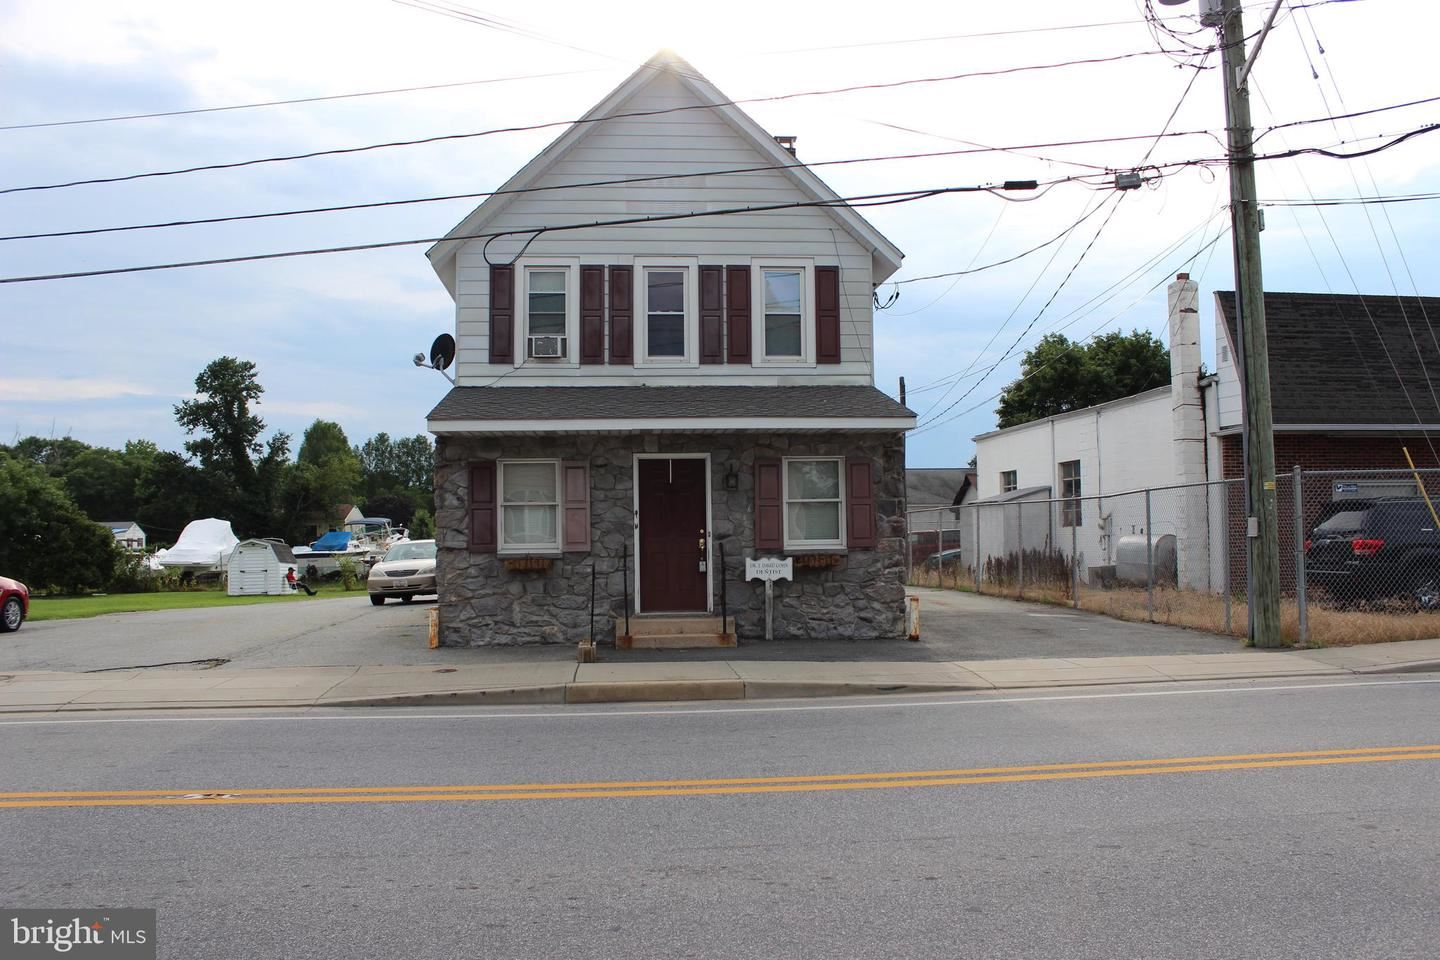 Photo of 121 S BOHEMIA AVE, CECILTON, MD 21913 (MLS # MDCC170018)